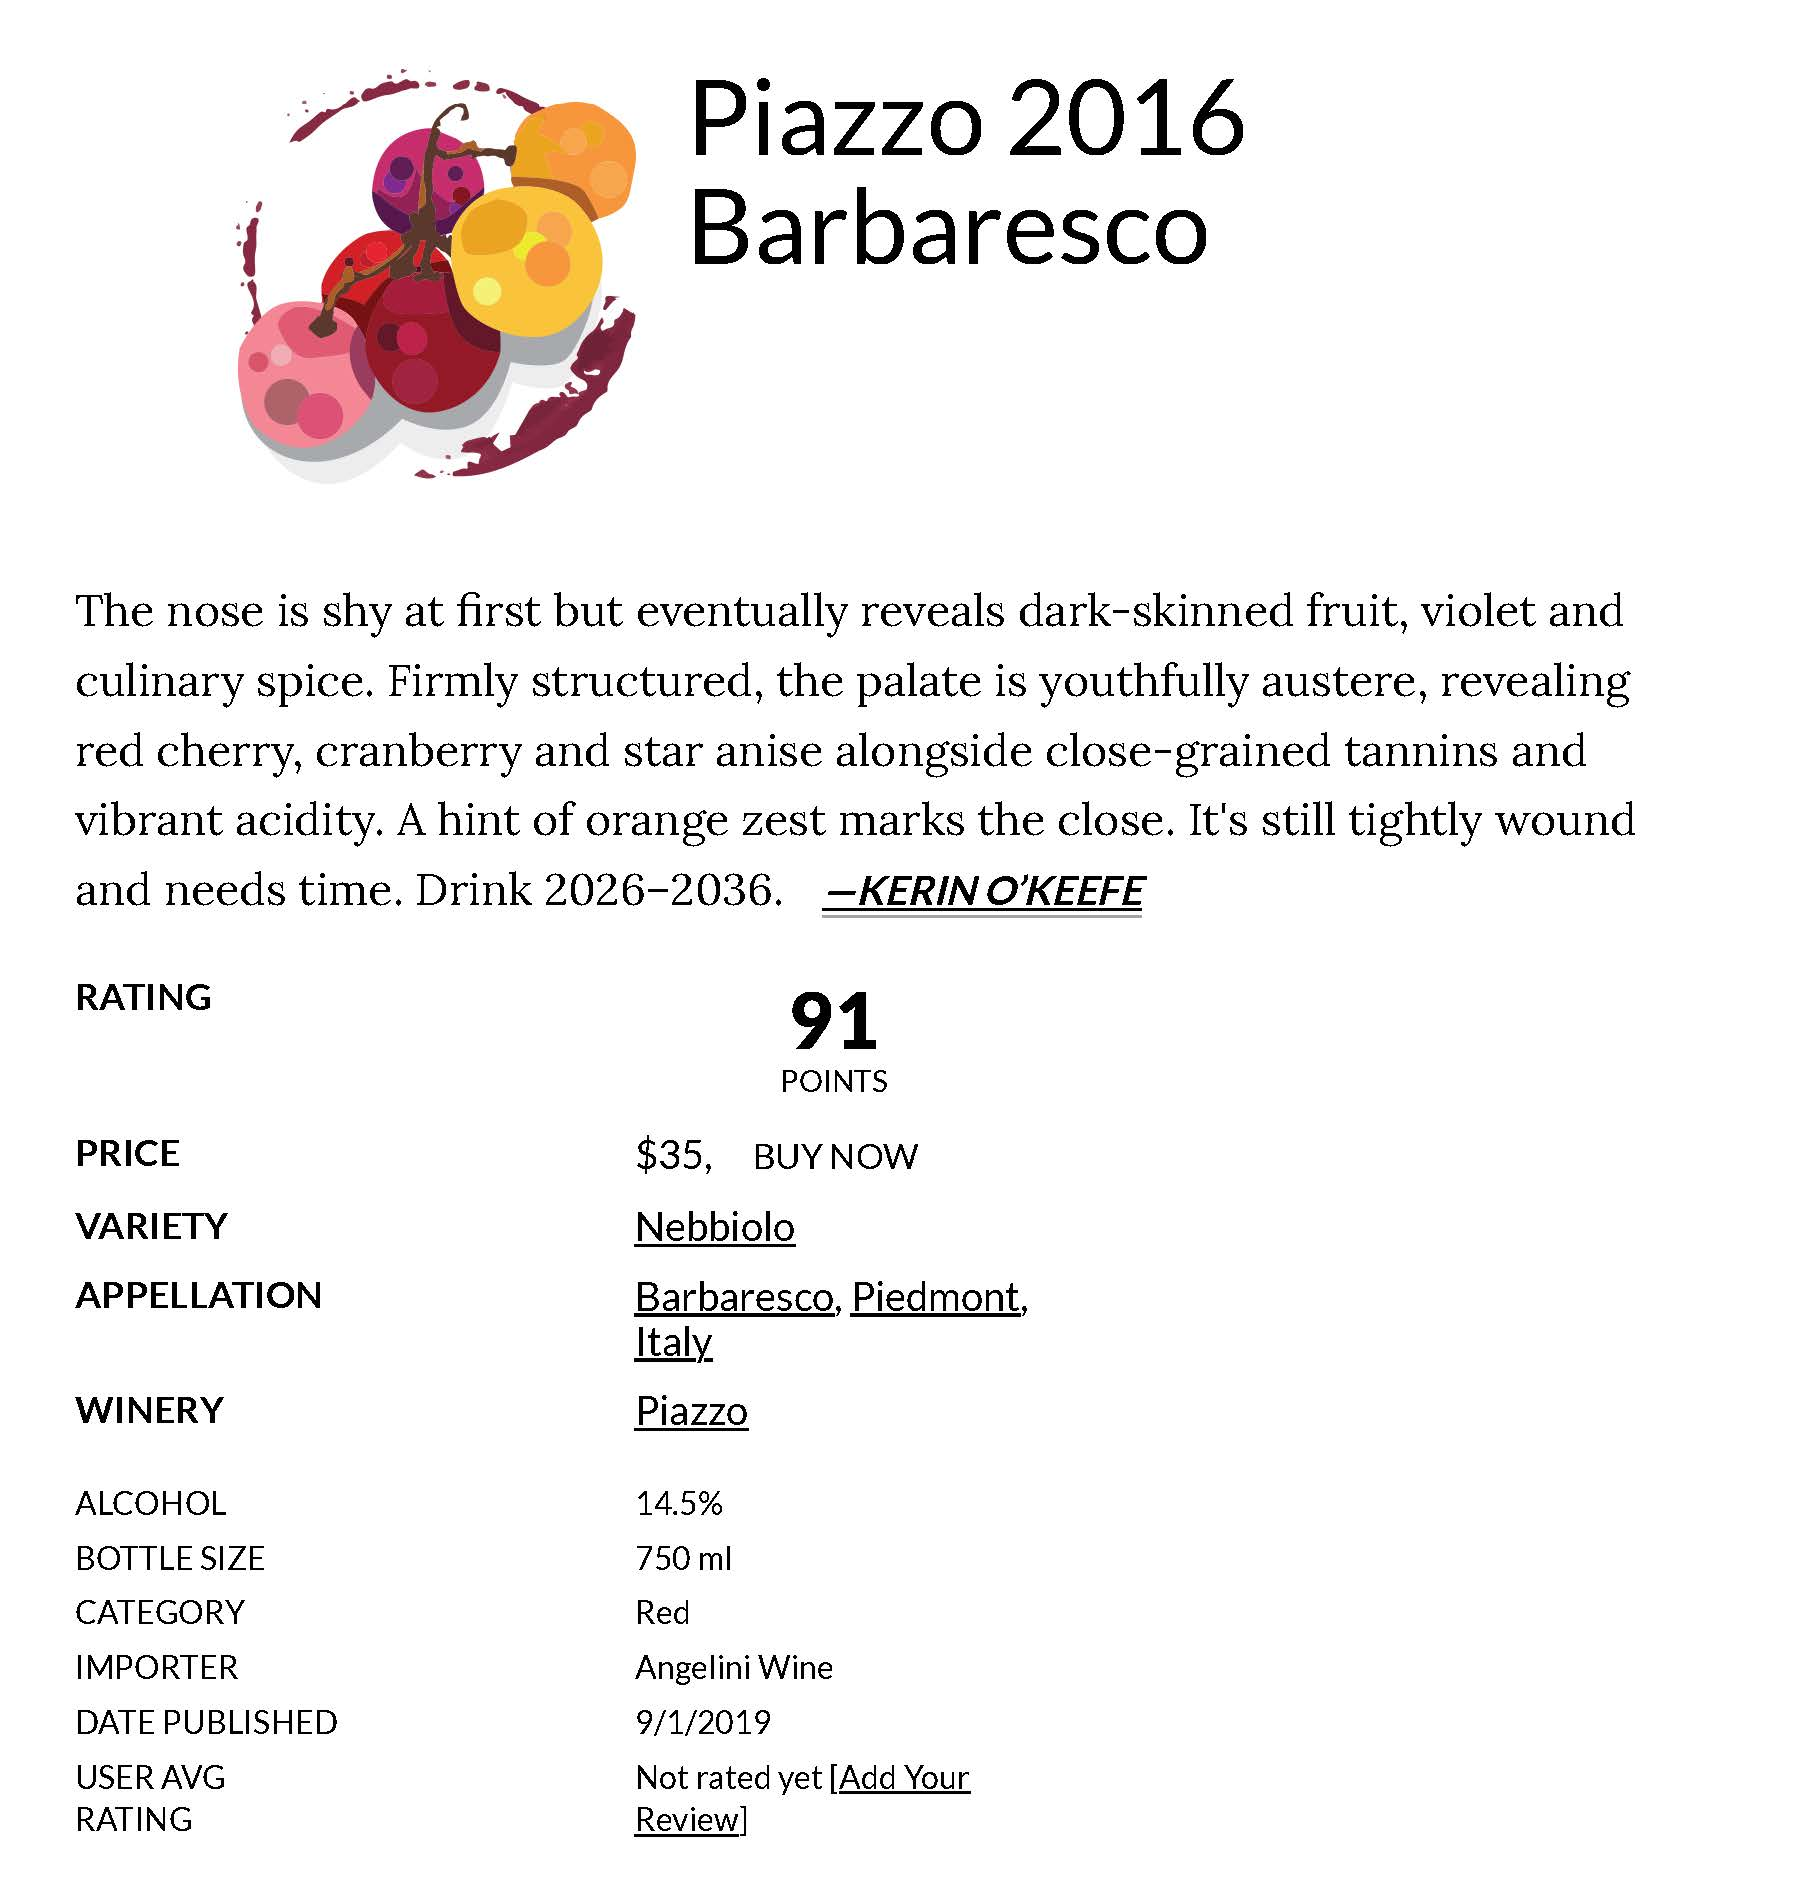 https://www.angeliniwine.com/wp-content/uploads/2020/11/Piazzo-2016-Barbaresco-Rating-and-Review-Wine-Enthusiast.jpg